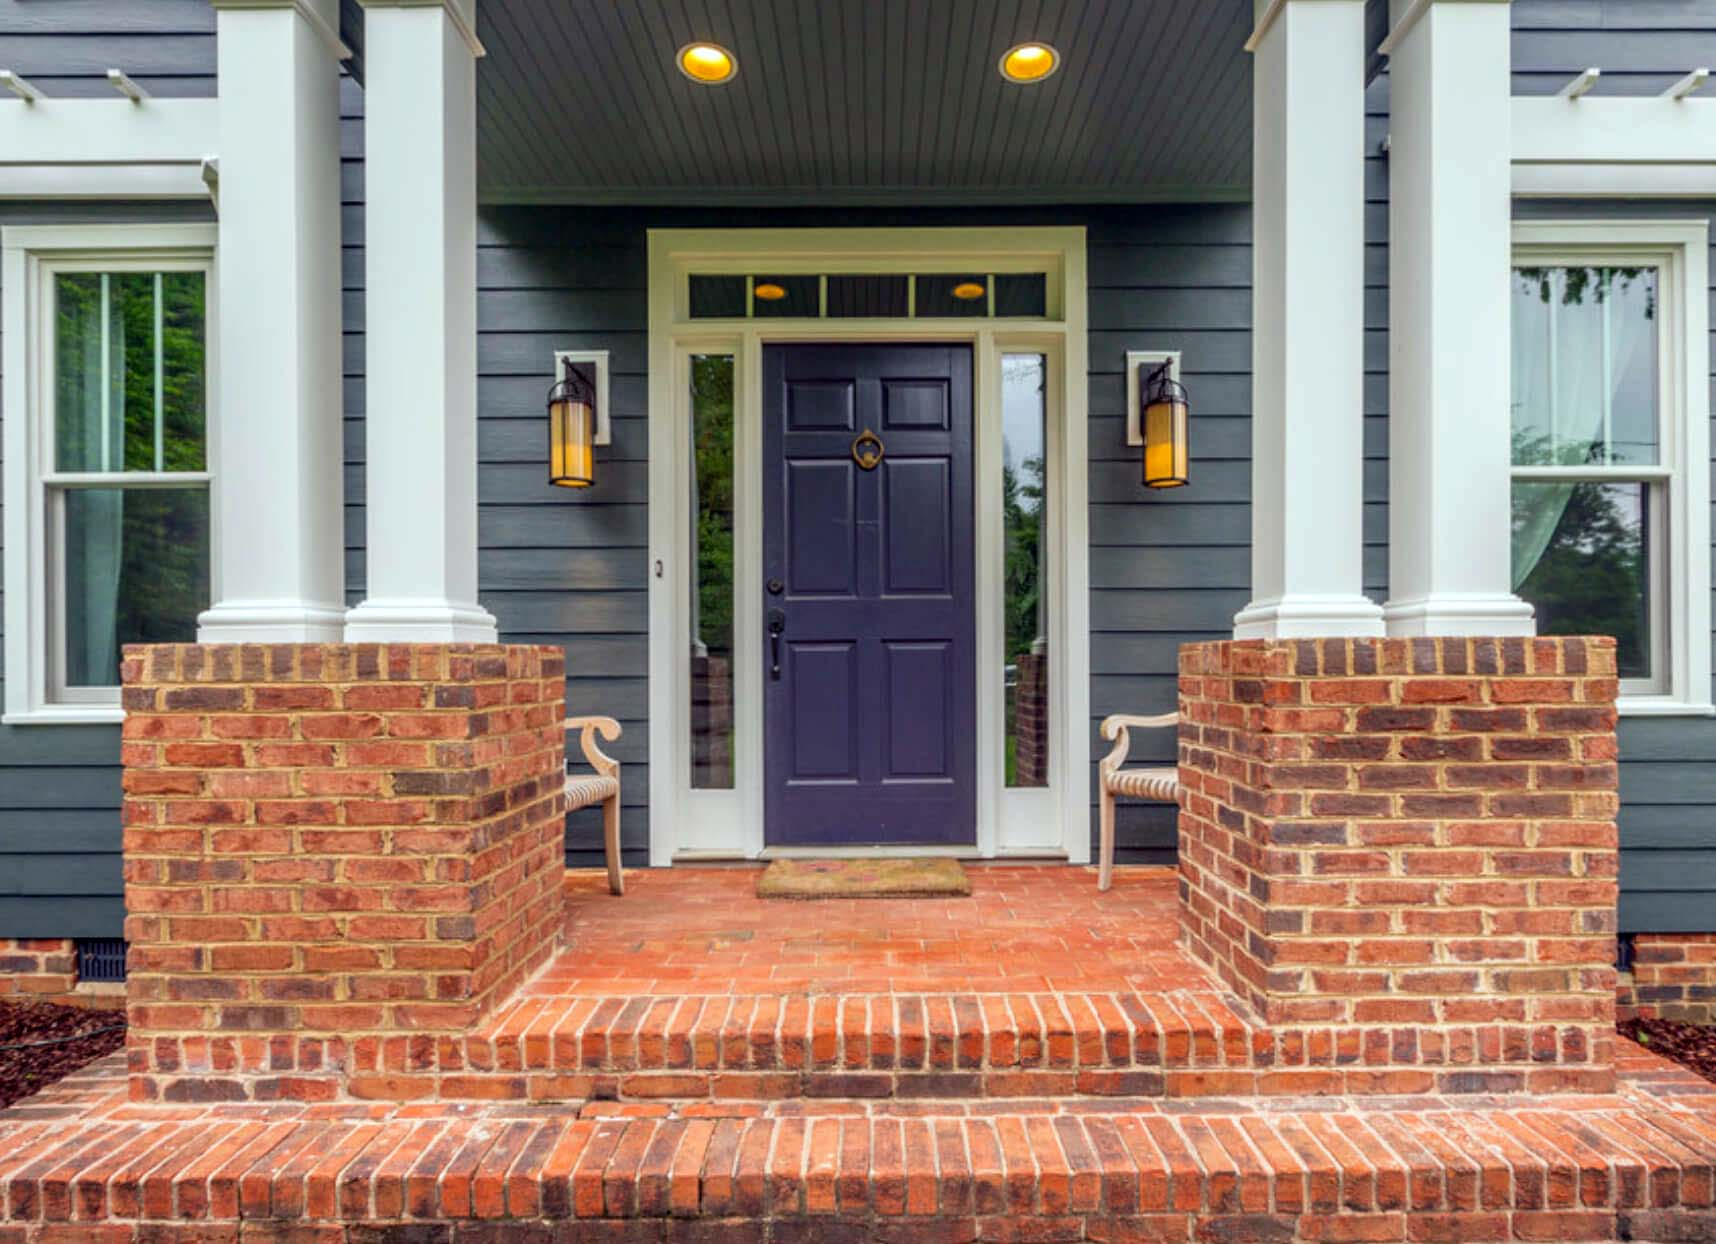 purple front door with glass transoms white trim blue siding with red brick columns front steps